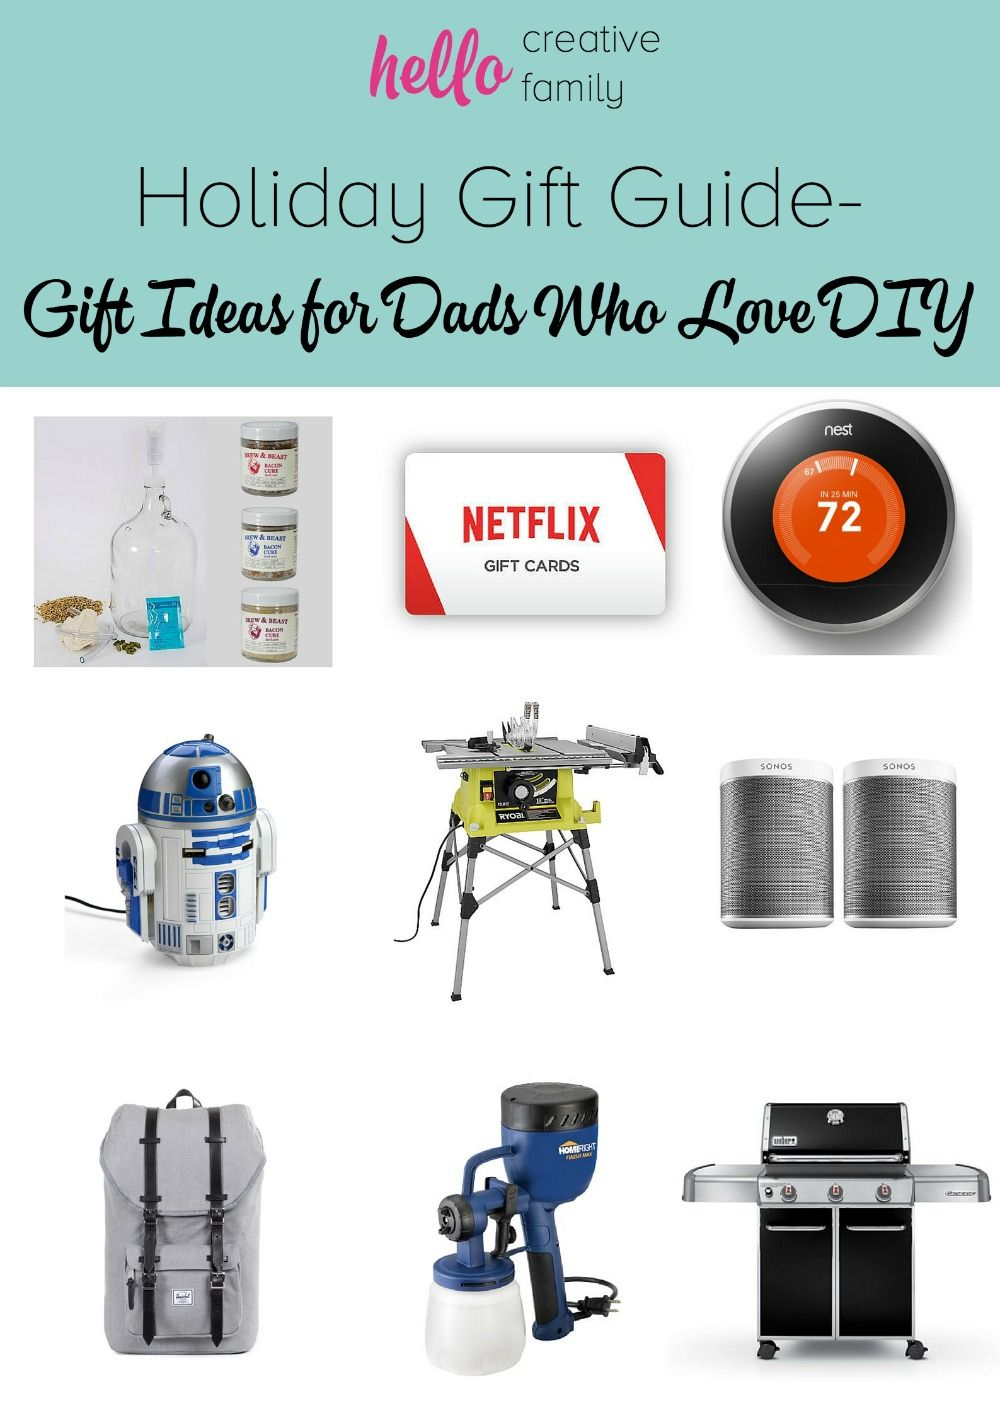 Holiday Gift Guide - Holiday Gift Ideas for Dads Who Love DIY with ...